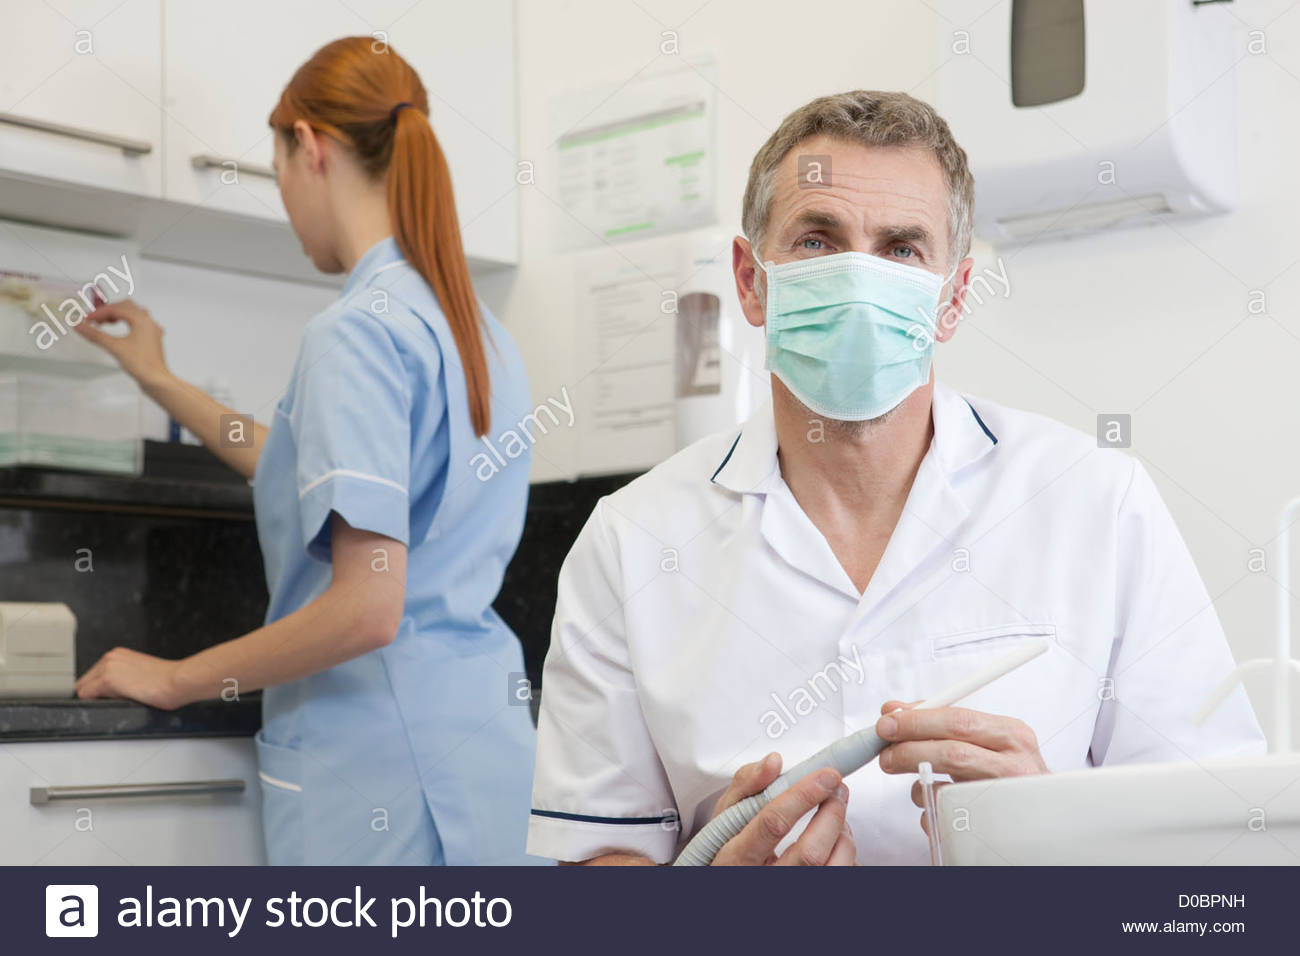 A male dentist and female dental nurse in a dental surgery - Stock Image